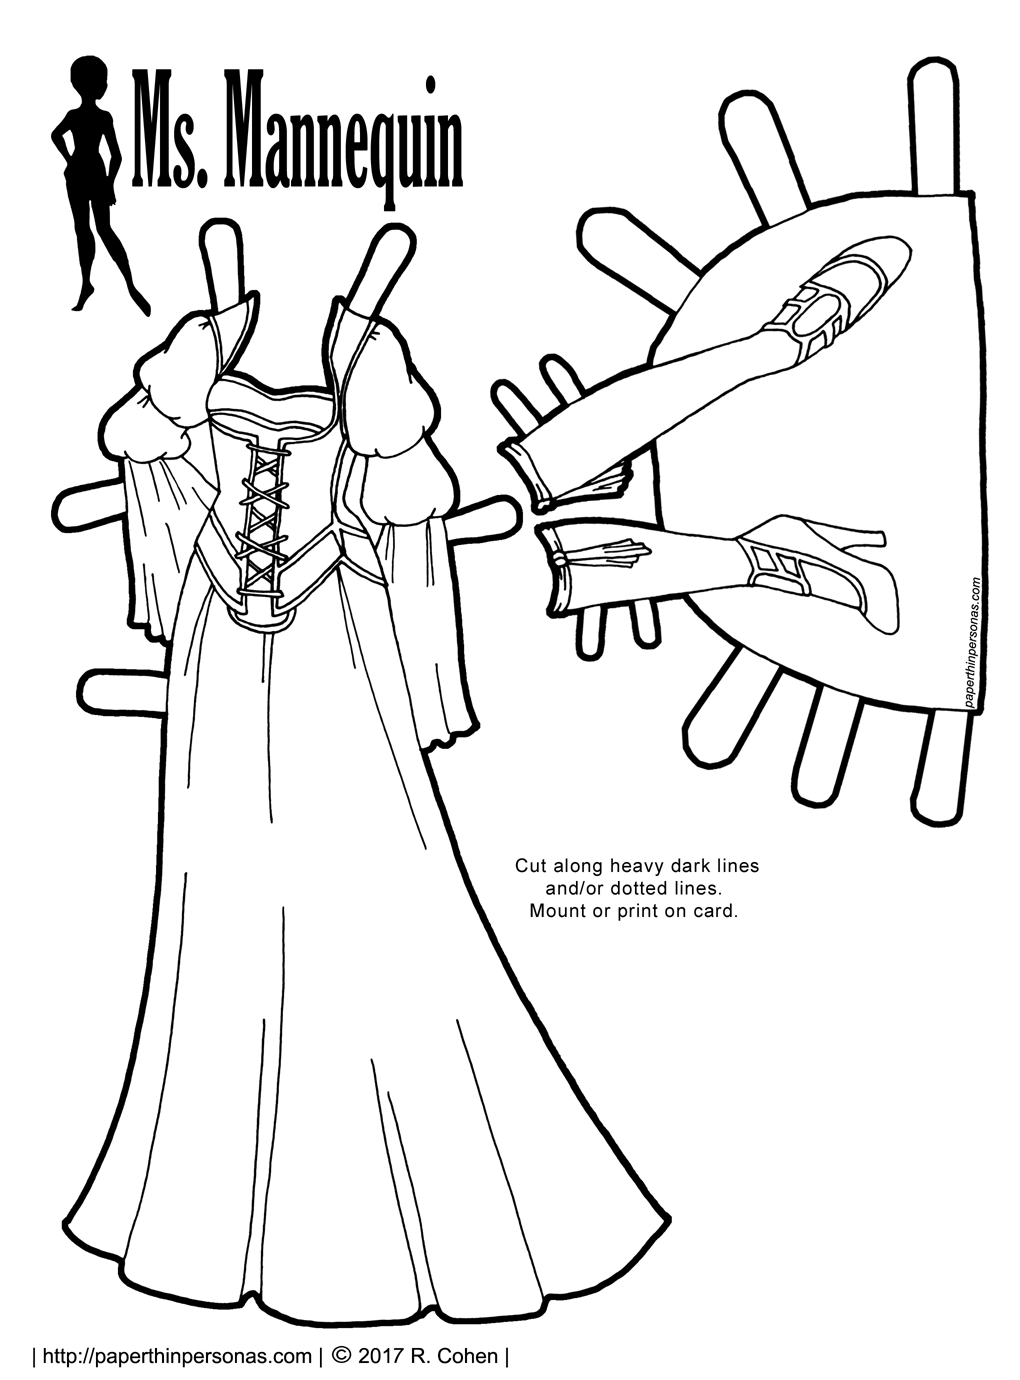 An elegant medieval inspired fantasy gown with stockings and shoes for the Ms. Mannequin printable paper doll series from paperthinpersonas.com. The gown has double puffed sleeves, a long skirt and a corset over top of it which is accented in piping. The shoes are multi-strapped high heels with stockings and garters.